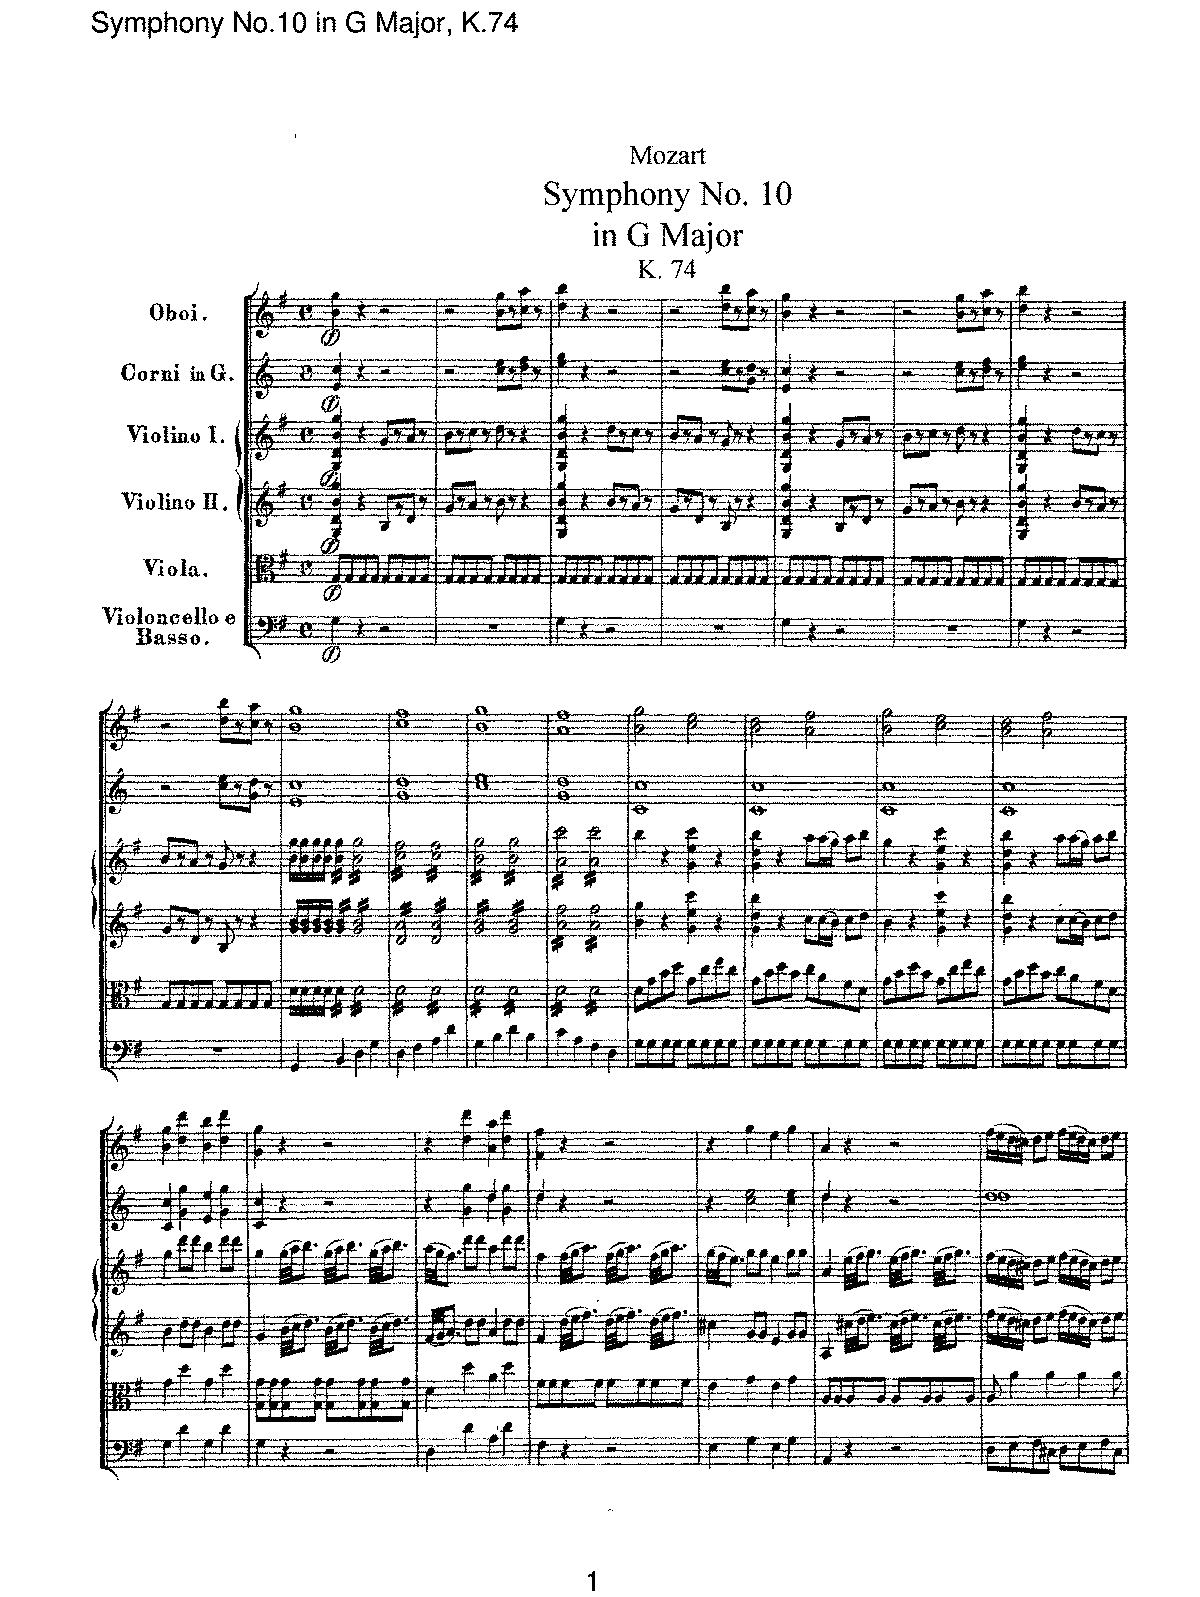 Mozart - Symphony No 10 in G Major, K74.pdf